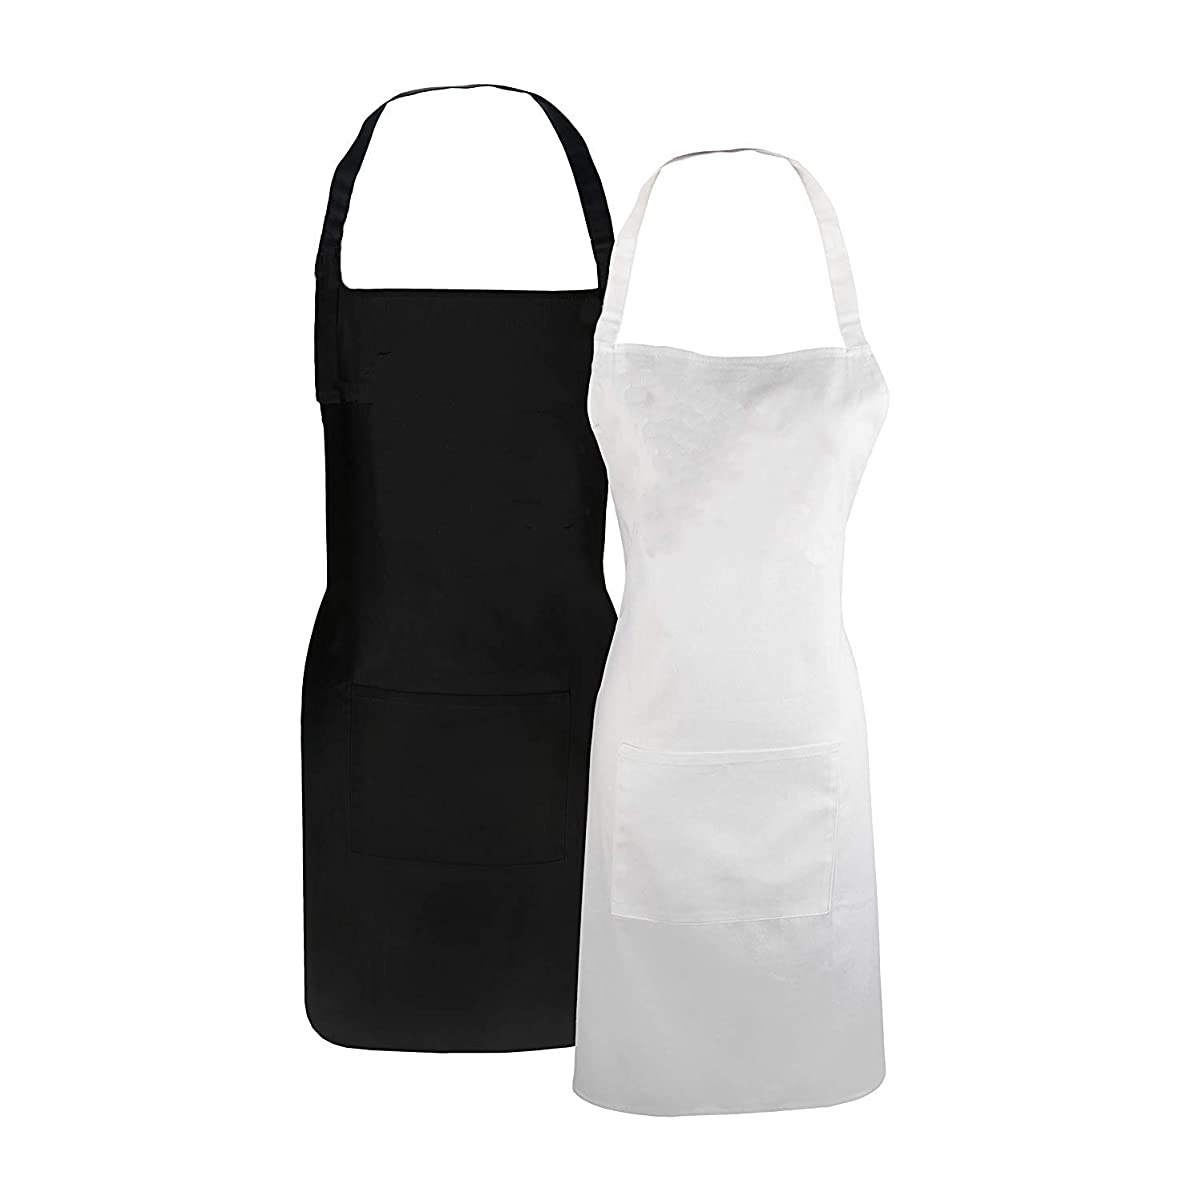 TSD STORY Couples Cooking Aprons 2PCS Set Couple Gift Bib Apron Newly Engaged Gifts for Wedding Engagement Anniversary (Black+White)